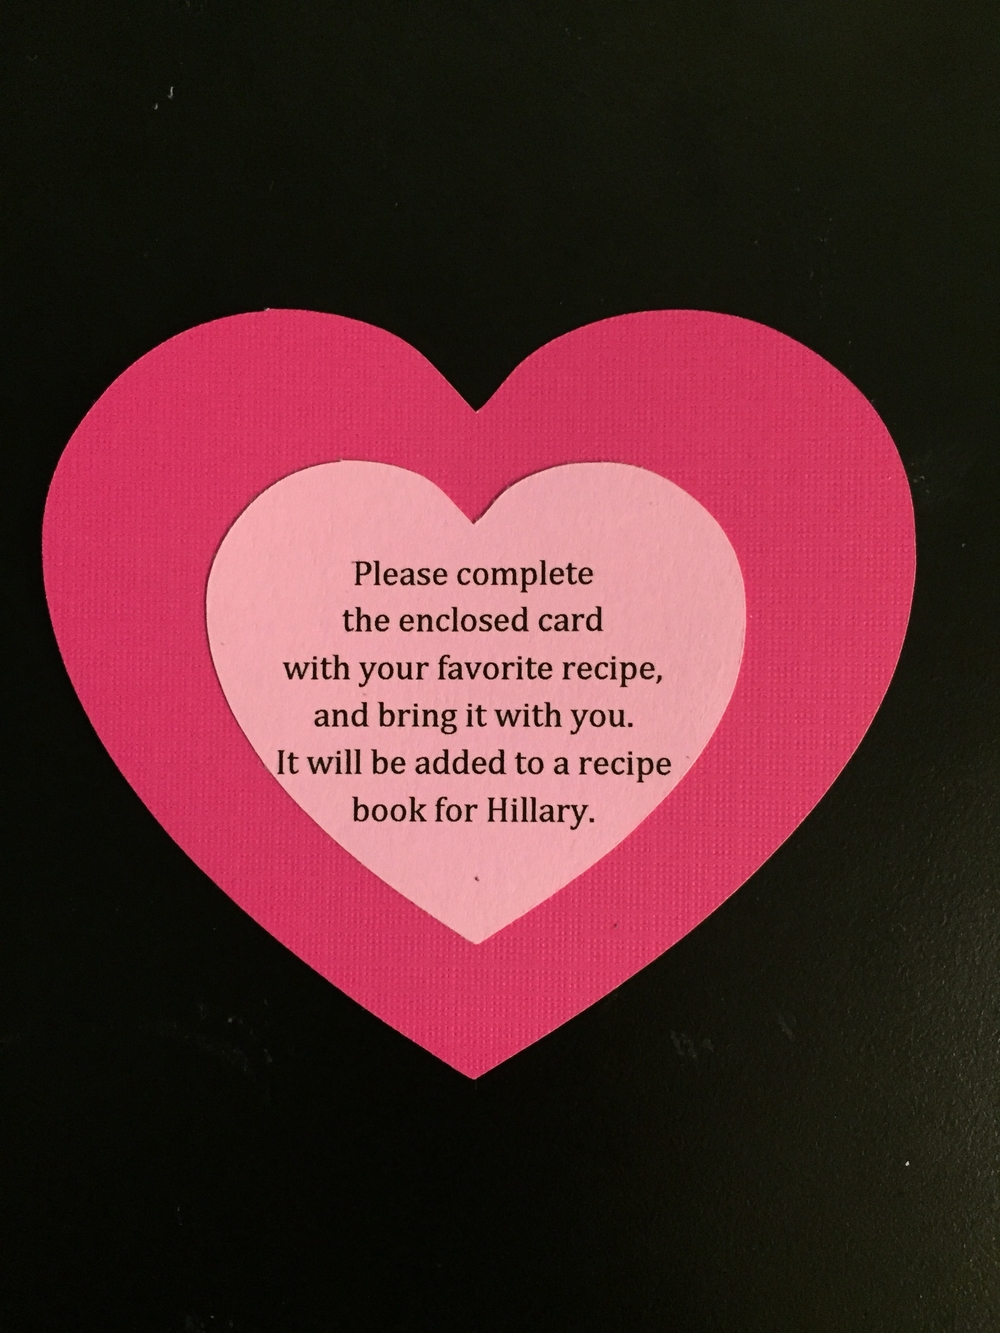 using my silhouette cameo i made these heart inserts and enclosed a card for each guest to bring their favorite recipe for hillarys collection